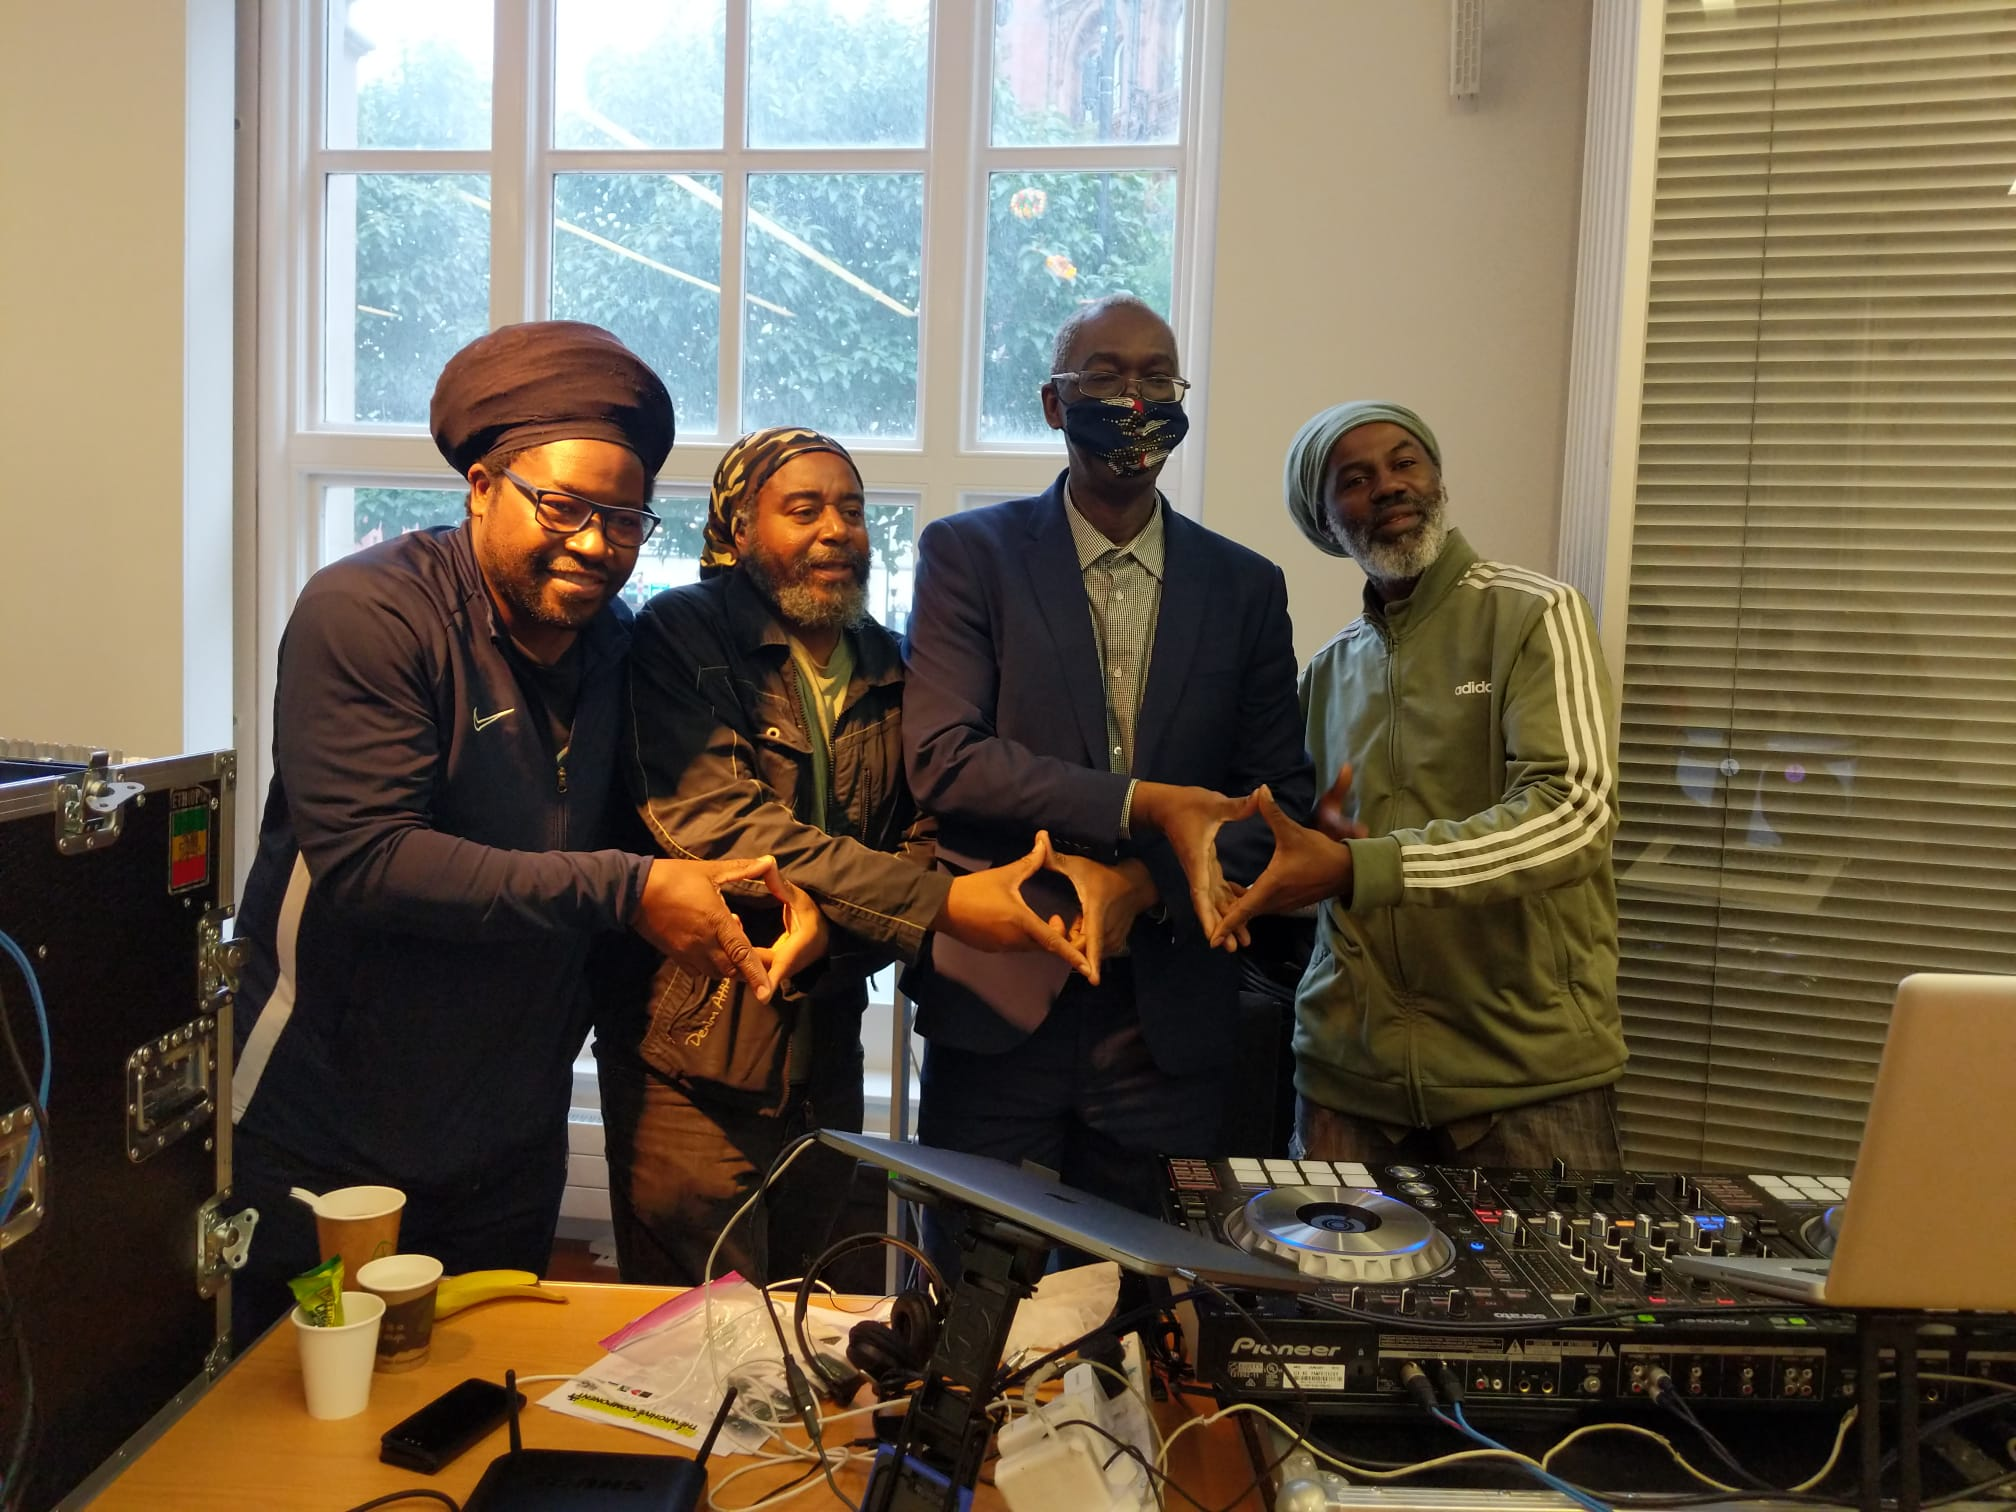 Tony Reeves from First Cut Media with members of Megatone Sound Foundation